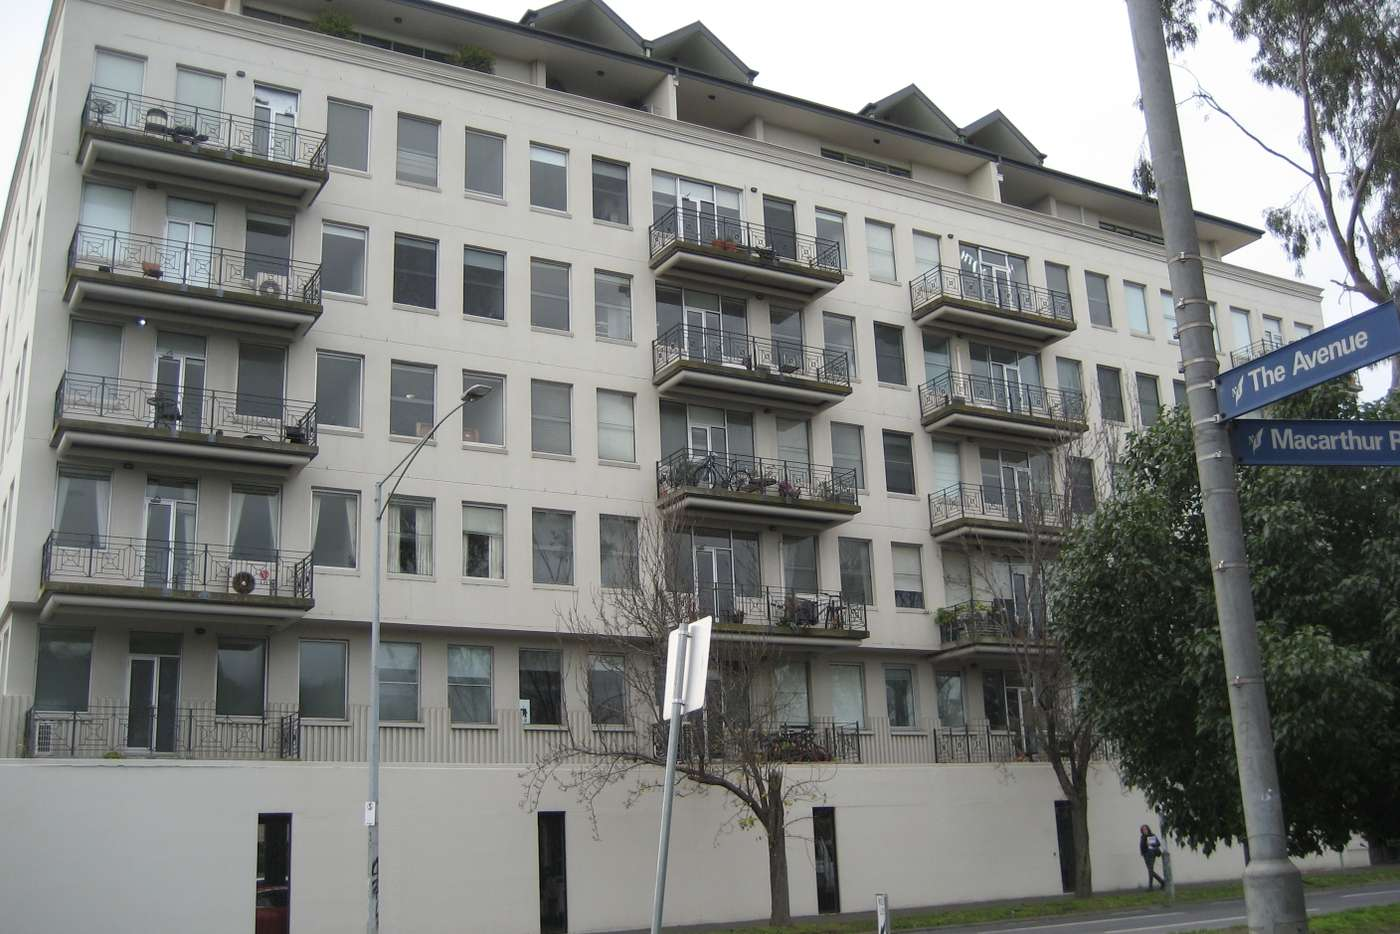 Main view of Homely apartment listing, 4/2 Macarthur Road, Parkville VIC 3052